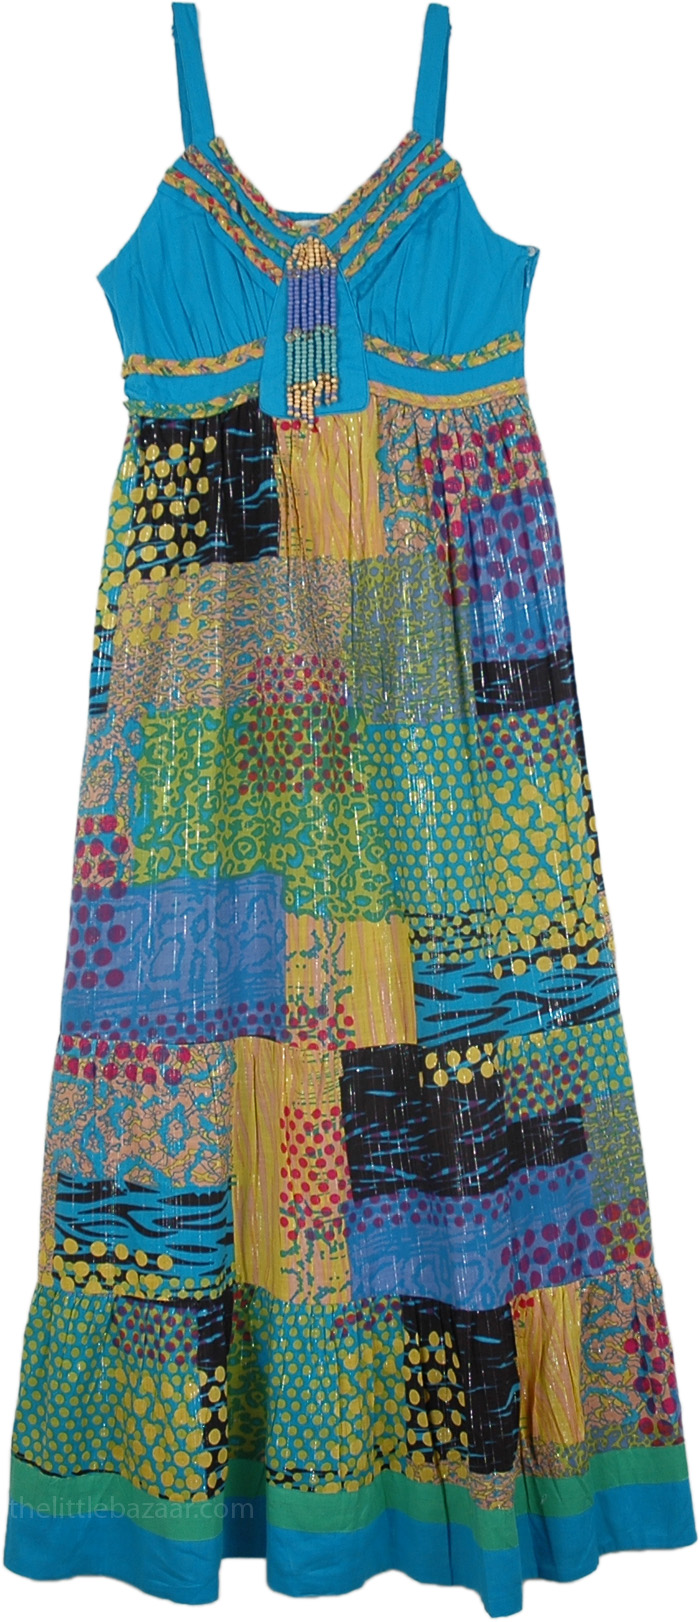 Tinsel Patchwork Ethnic Dress in Ocean Blue, Blue Chill Bohemian Patchwork Long Sundress